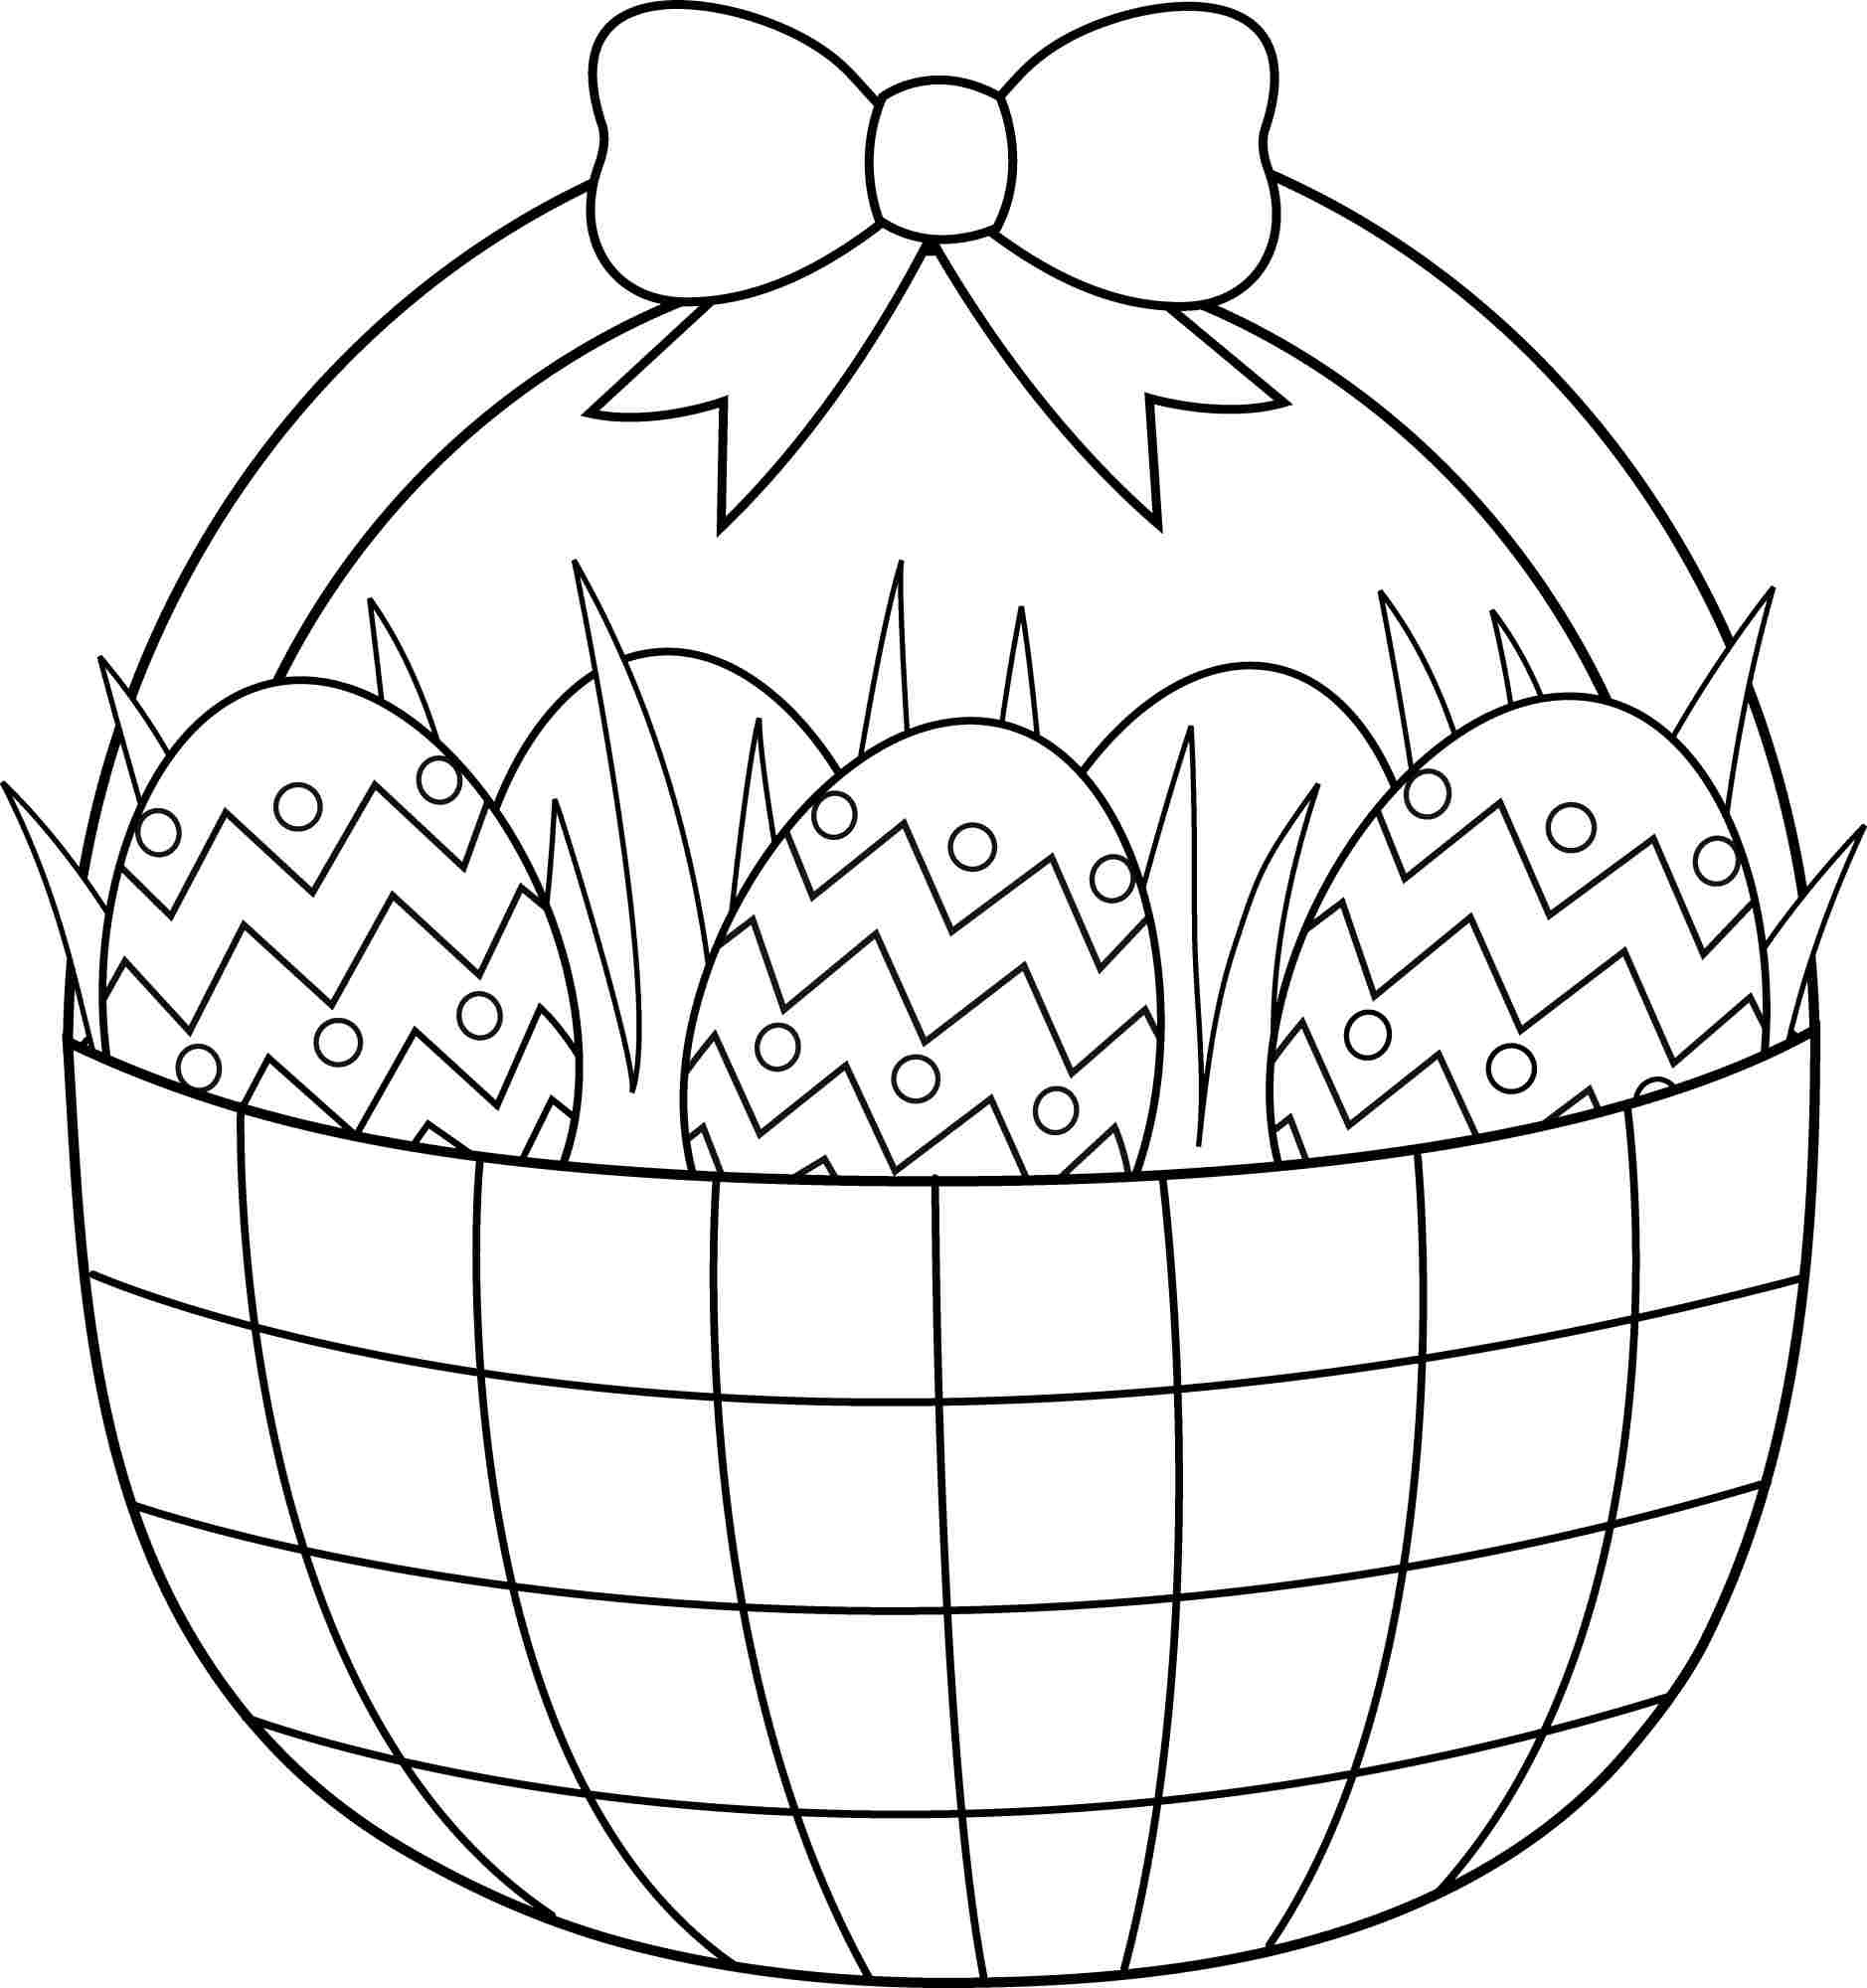 Printable Easter Coloring Pages Free Easter Coloring Pages Printable - Free Printable Coloring Pages Easter Basket